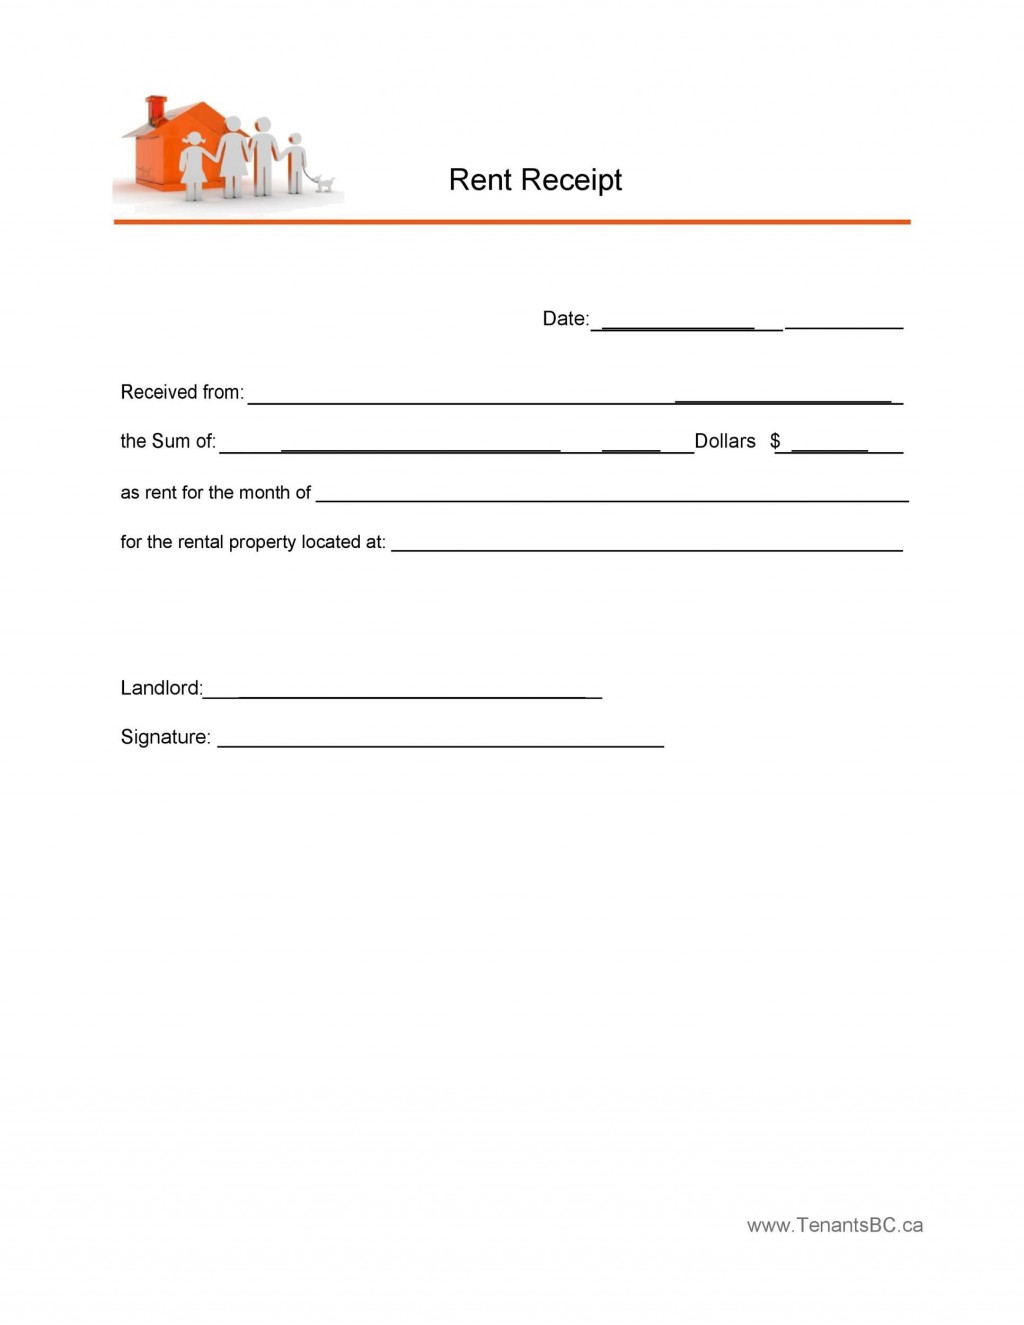 008 Surprising House Rent Receipt Sample Doc Highest Clarity  Template India Bill Format Word Document Pdf DownloadLarge